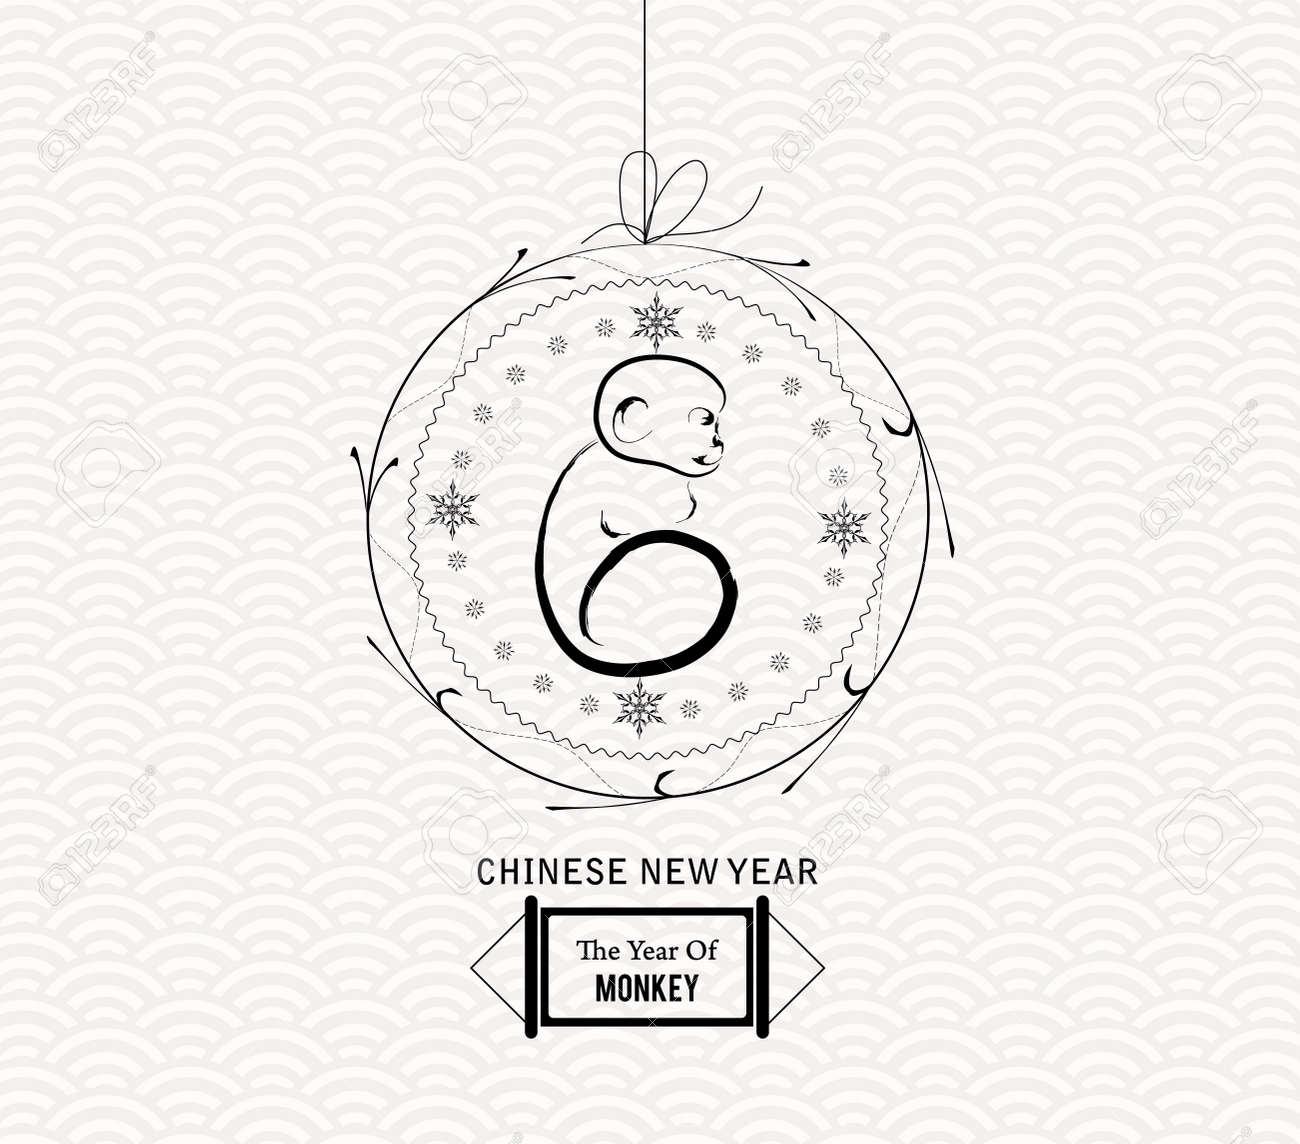 Chinese Symbol For Monkey Year 2016 Royalty Free Cliparts Vectors